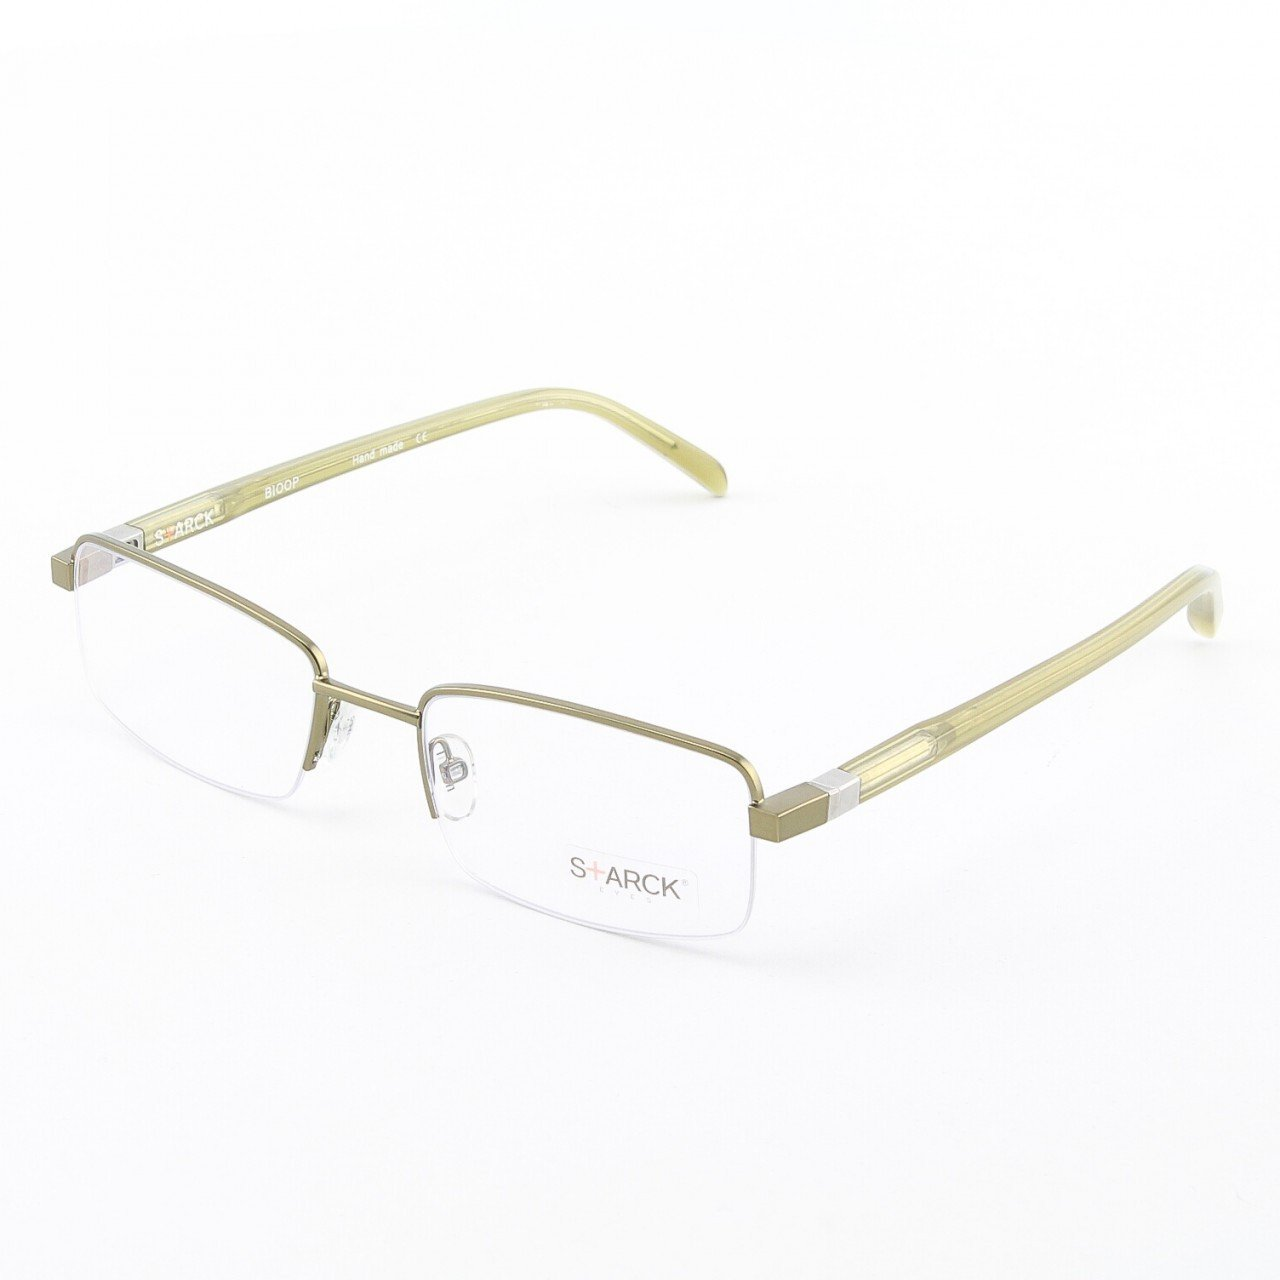 Starck Eyeglasses P0621 Col. 11 Bronze with Clear Lenses